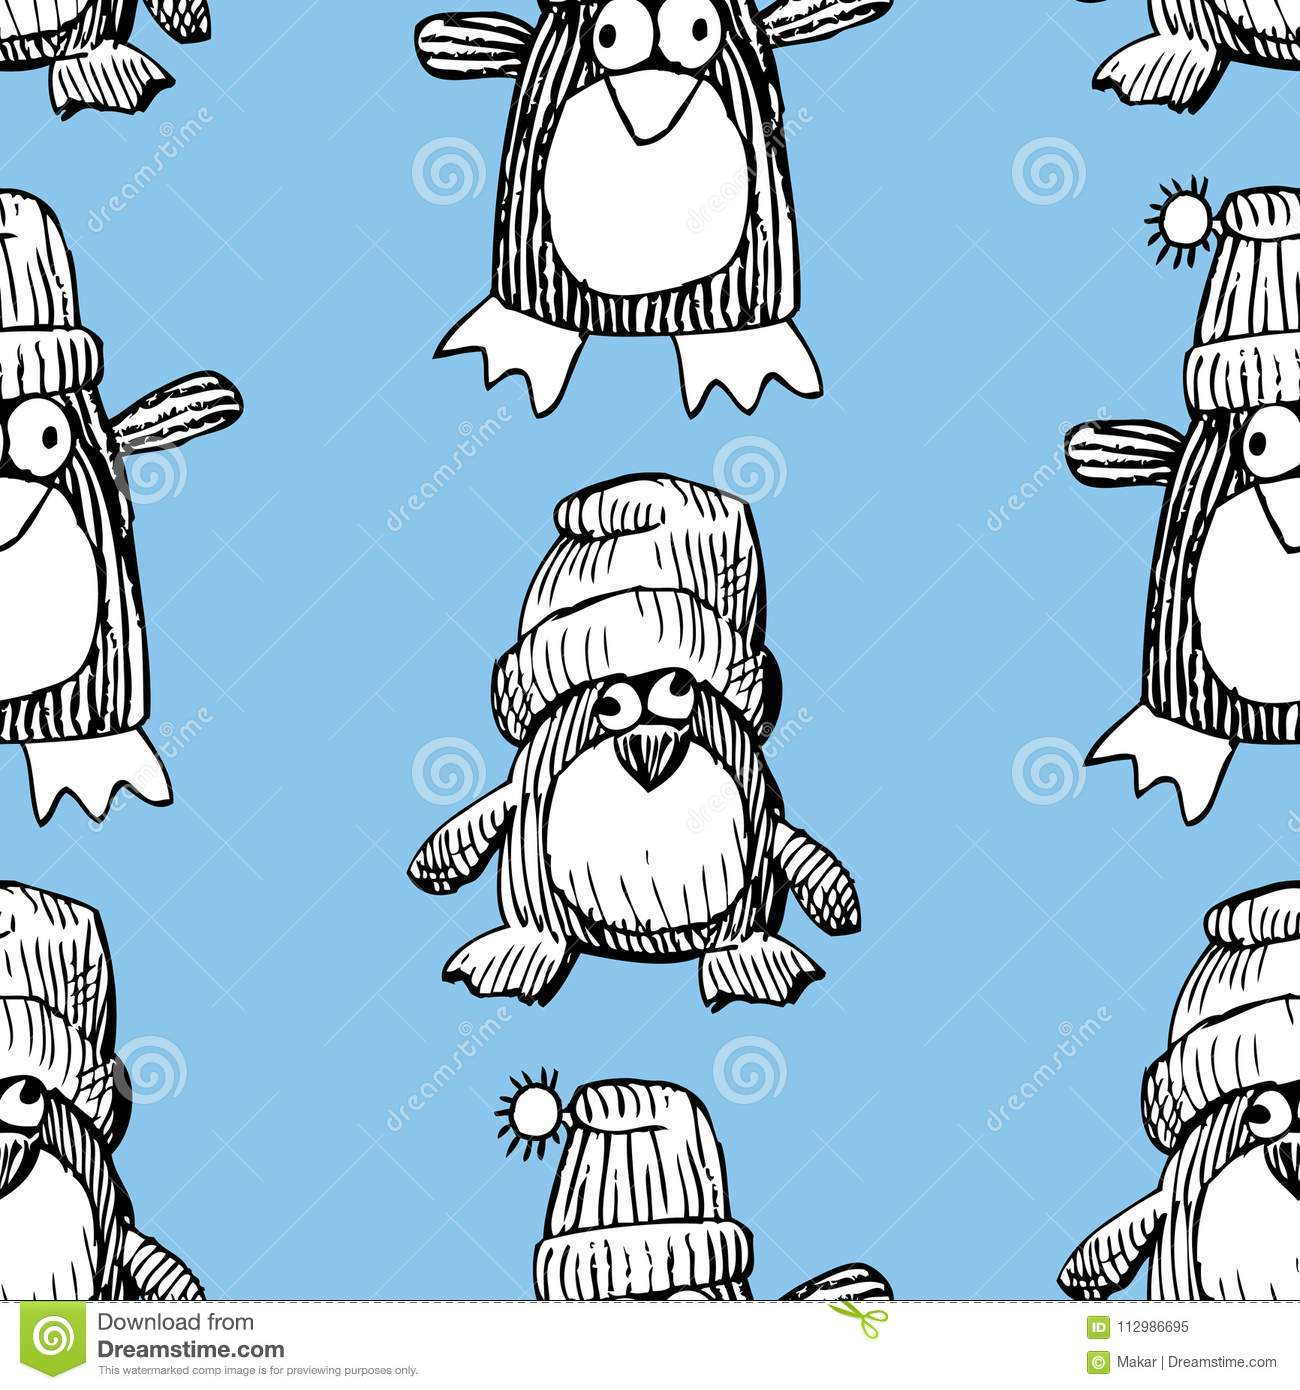 Pattern of the funny cartoon penguins